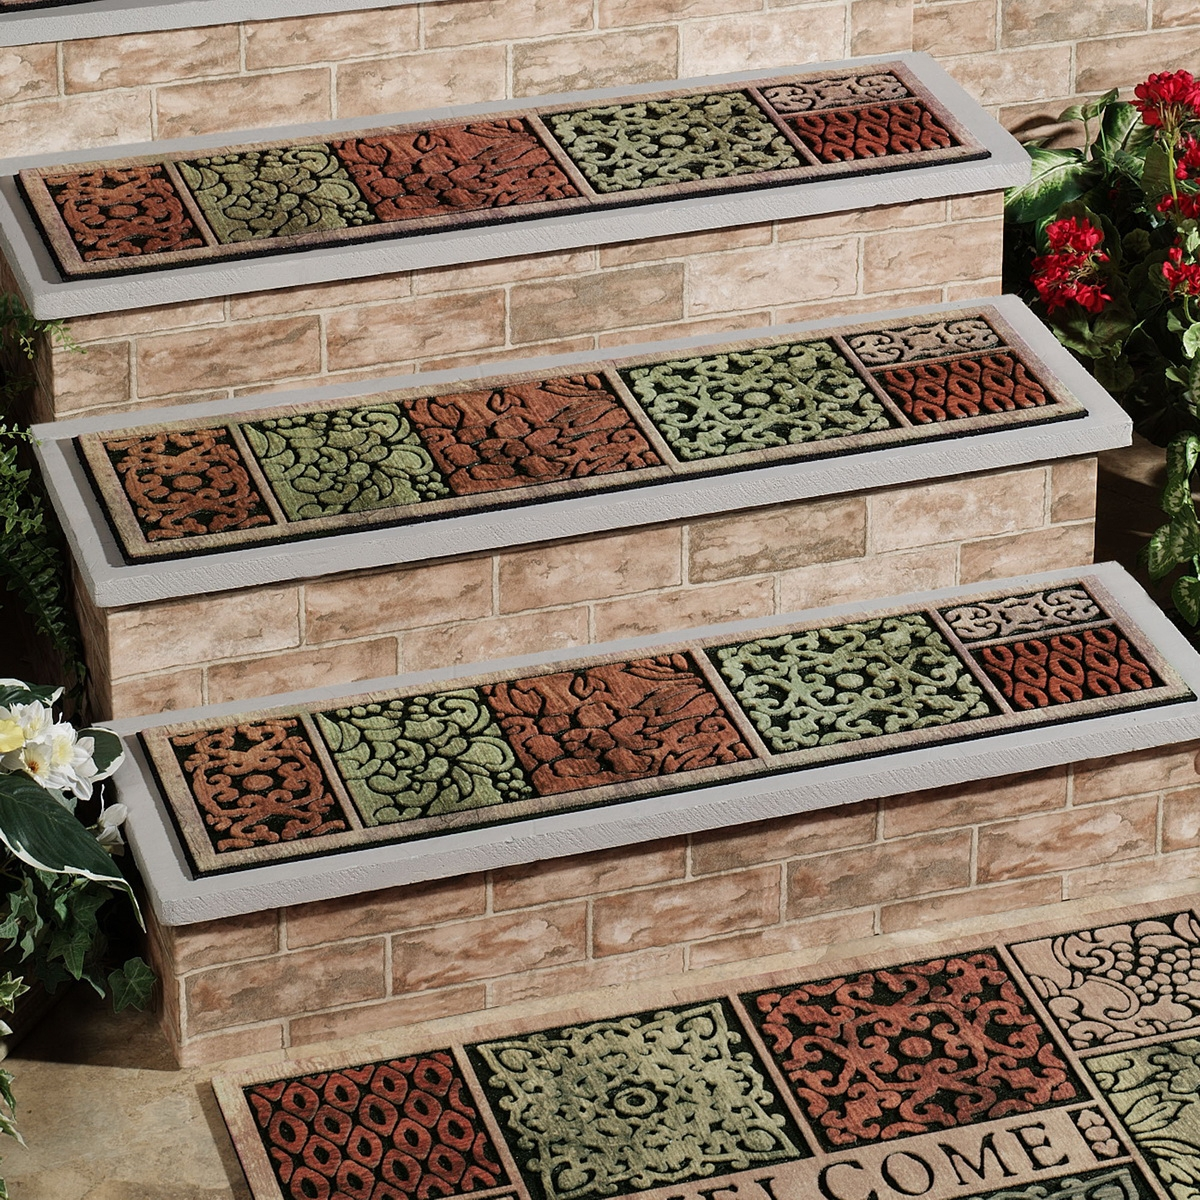 Stair Treads Rug Roselawnlutheran Inside Stair Treads And Rugs (#17 Of 20)